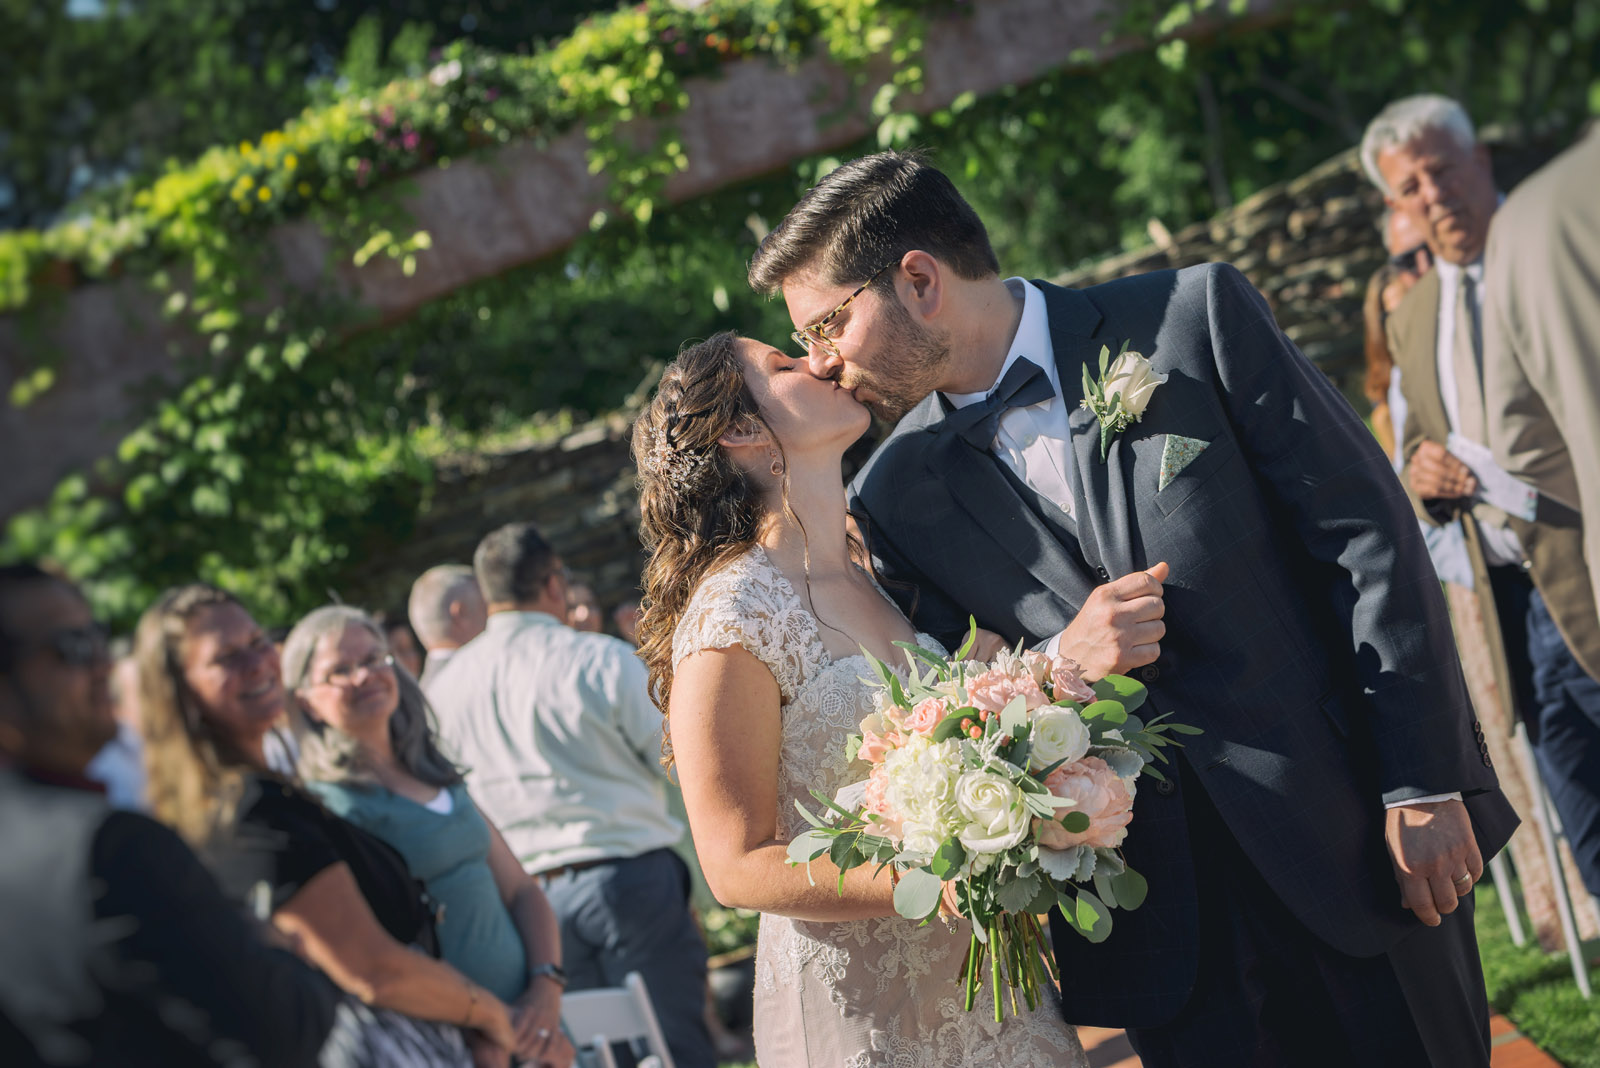 The Gables at Chadds Ford Wedding of Katlyn and Christopher